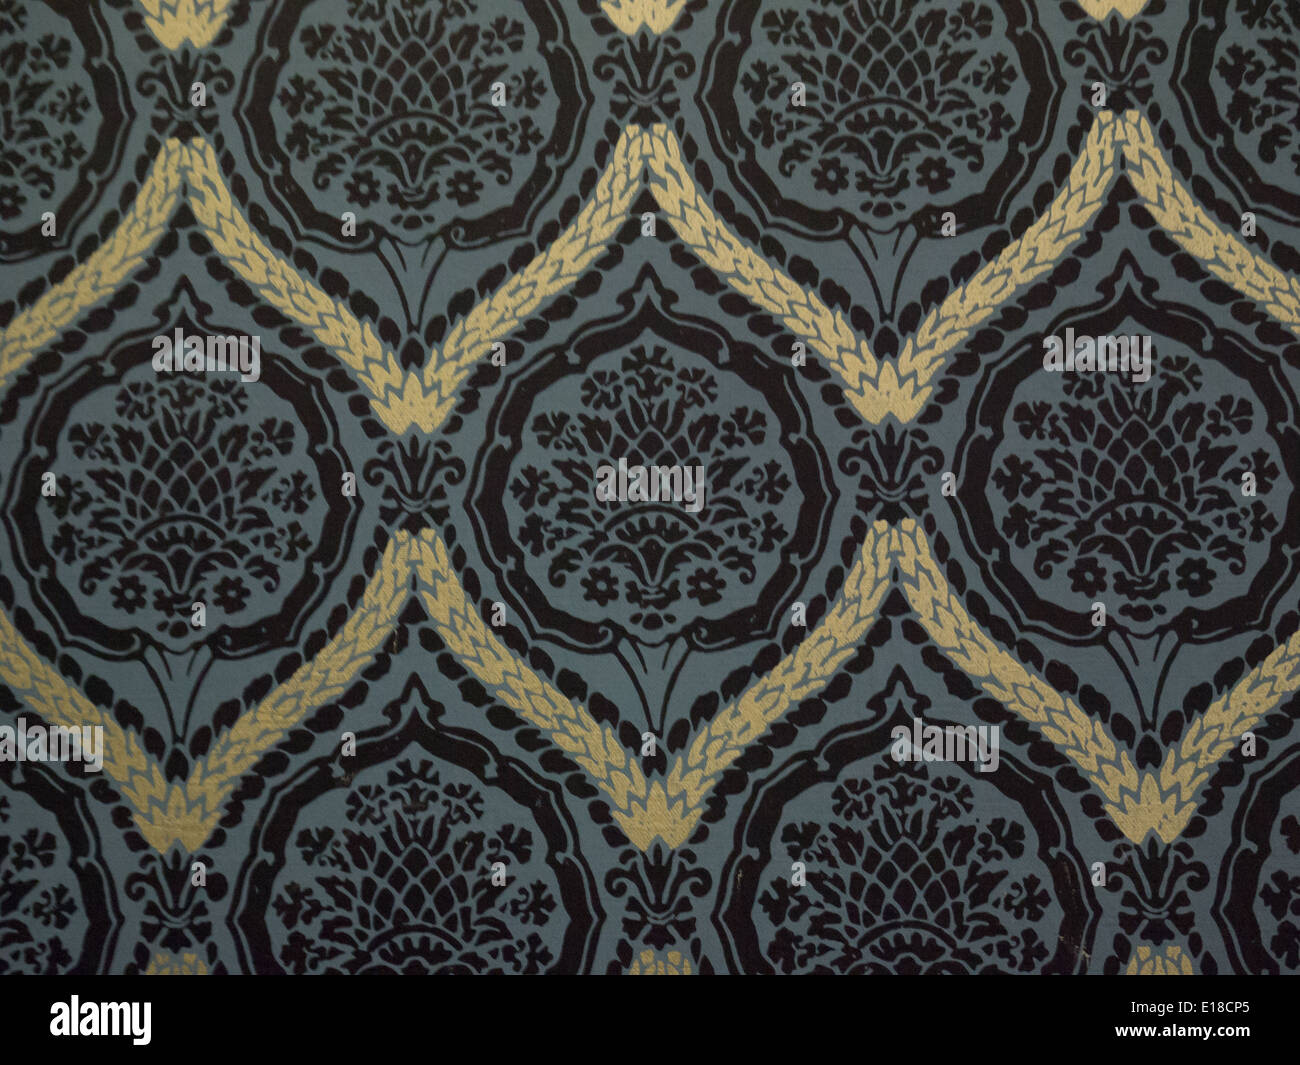 vintage wallpaper stockfotos vintage wallpaper bilder alamy. Black Bedroom Furniture Sets. Home Design Ideas